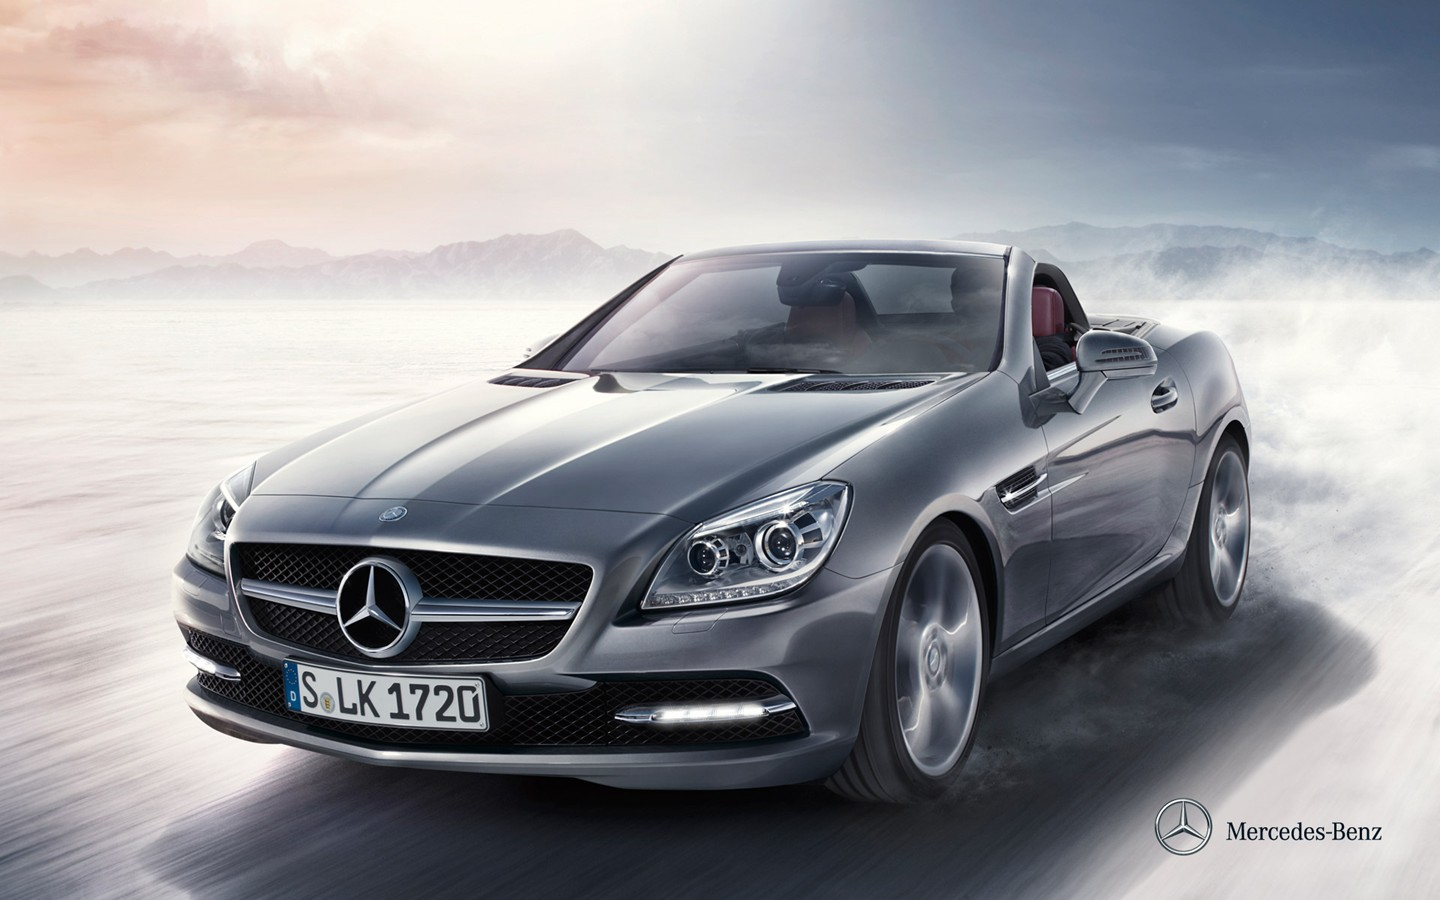 Mercedes-Benz SLK roadster 32022